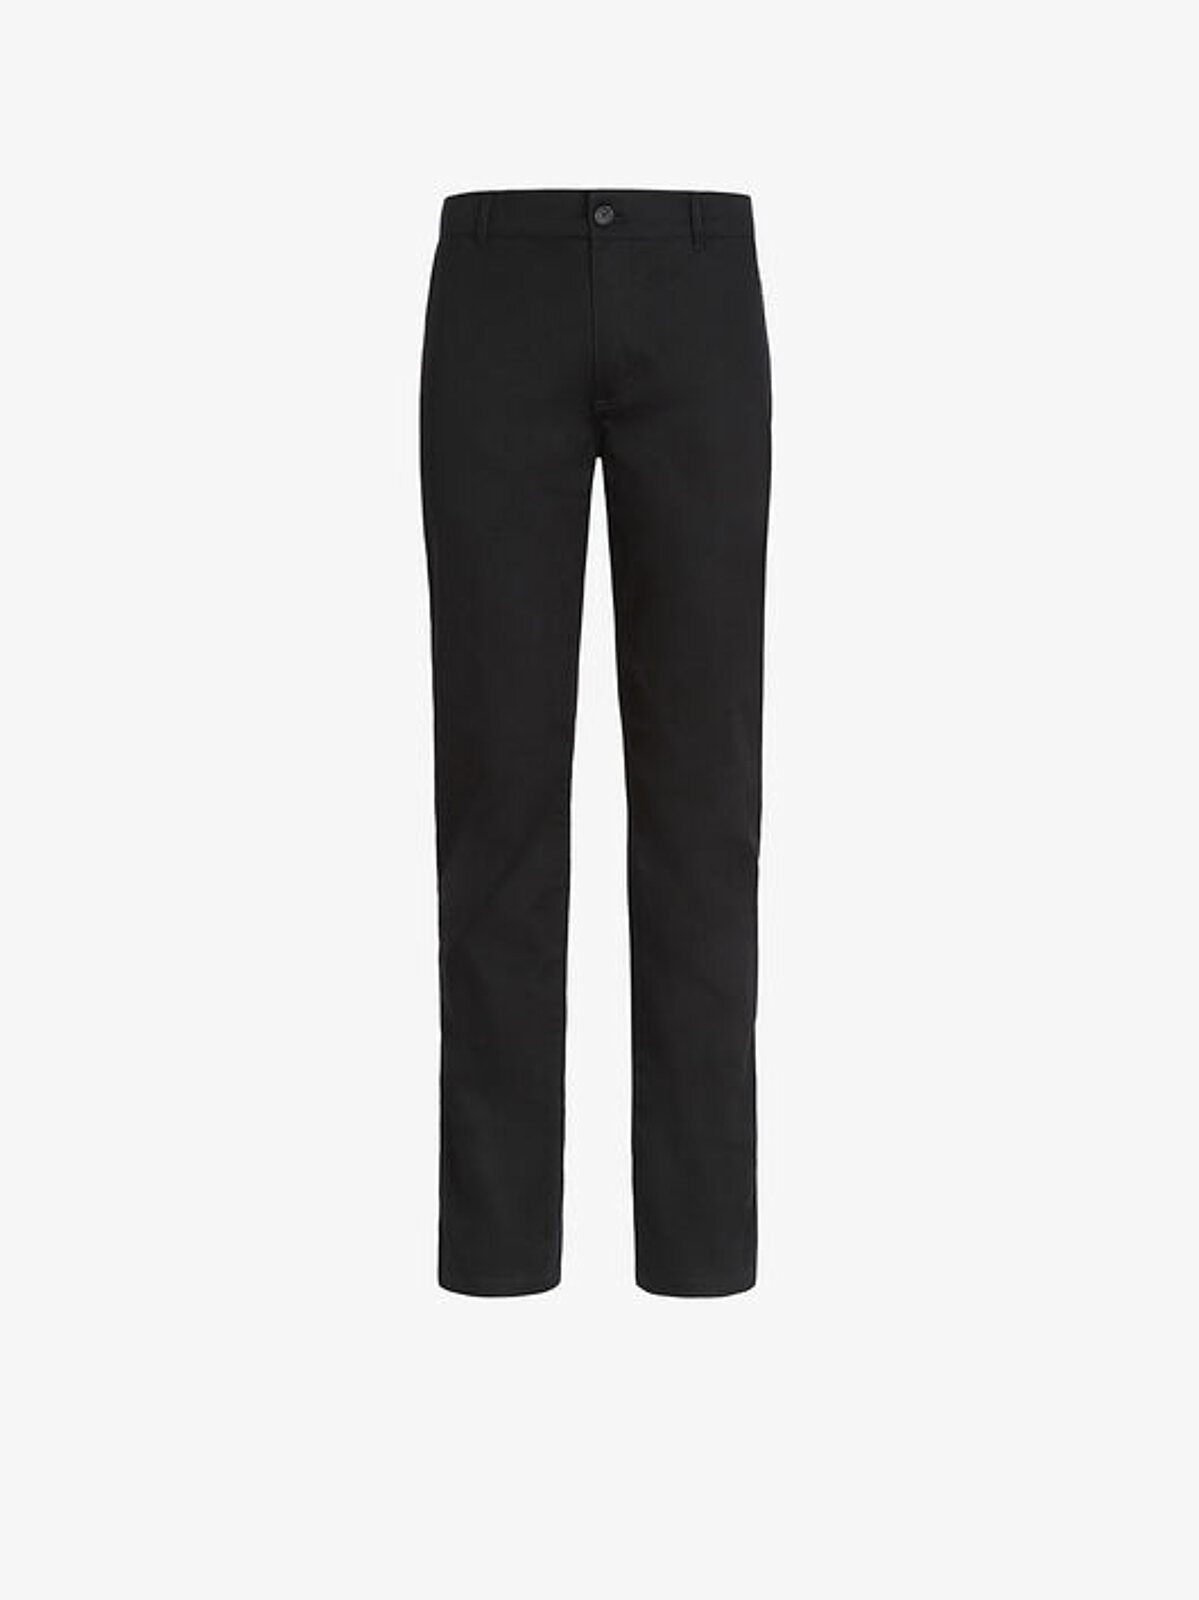 Chino Slim Fit Adresse Givenchy - Givenchy